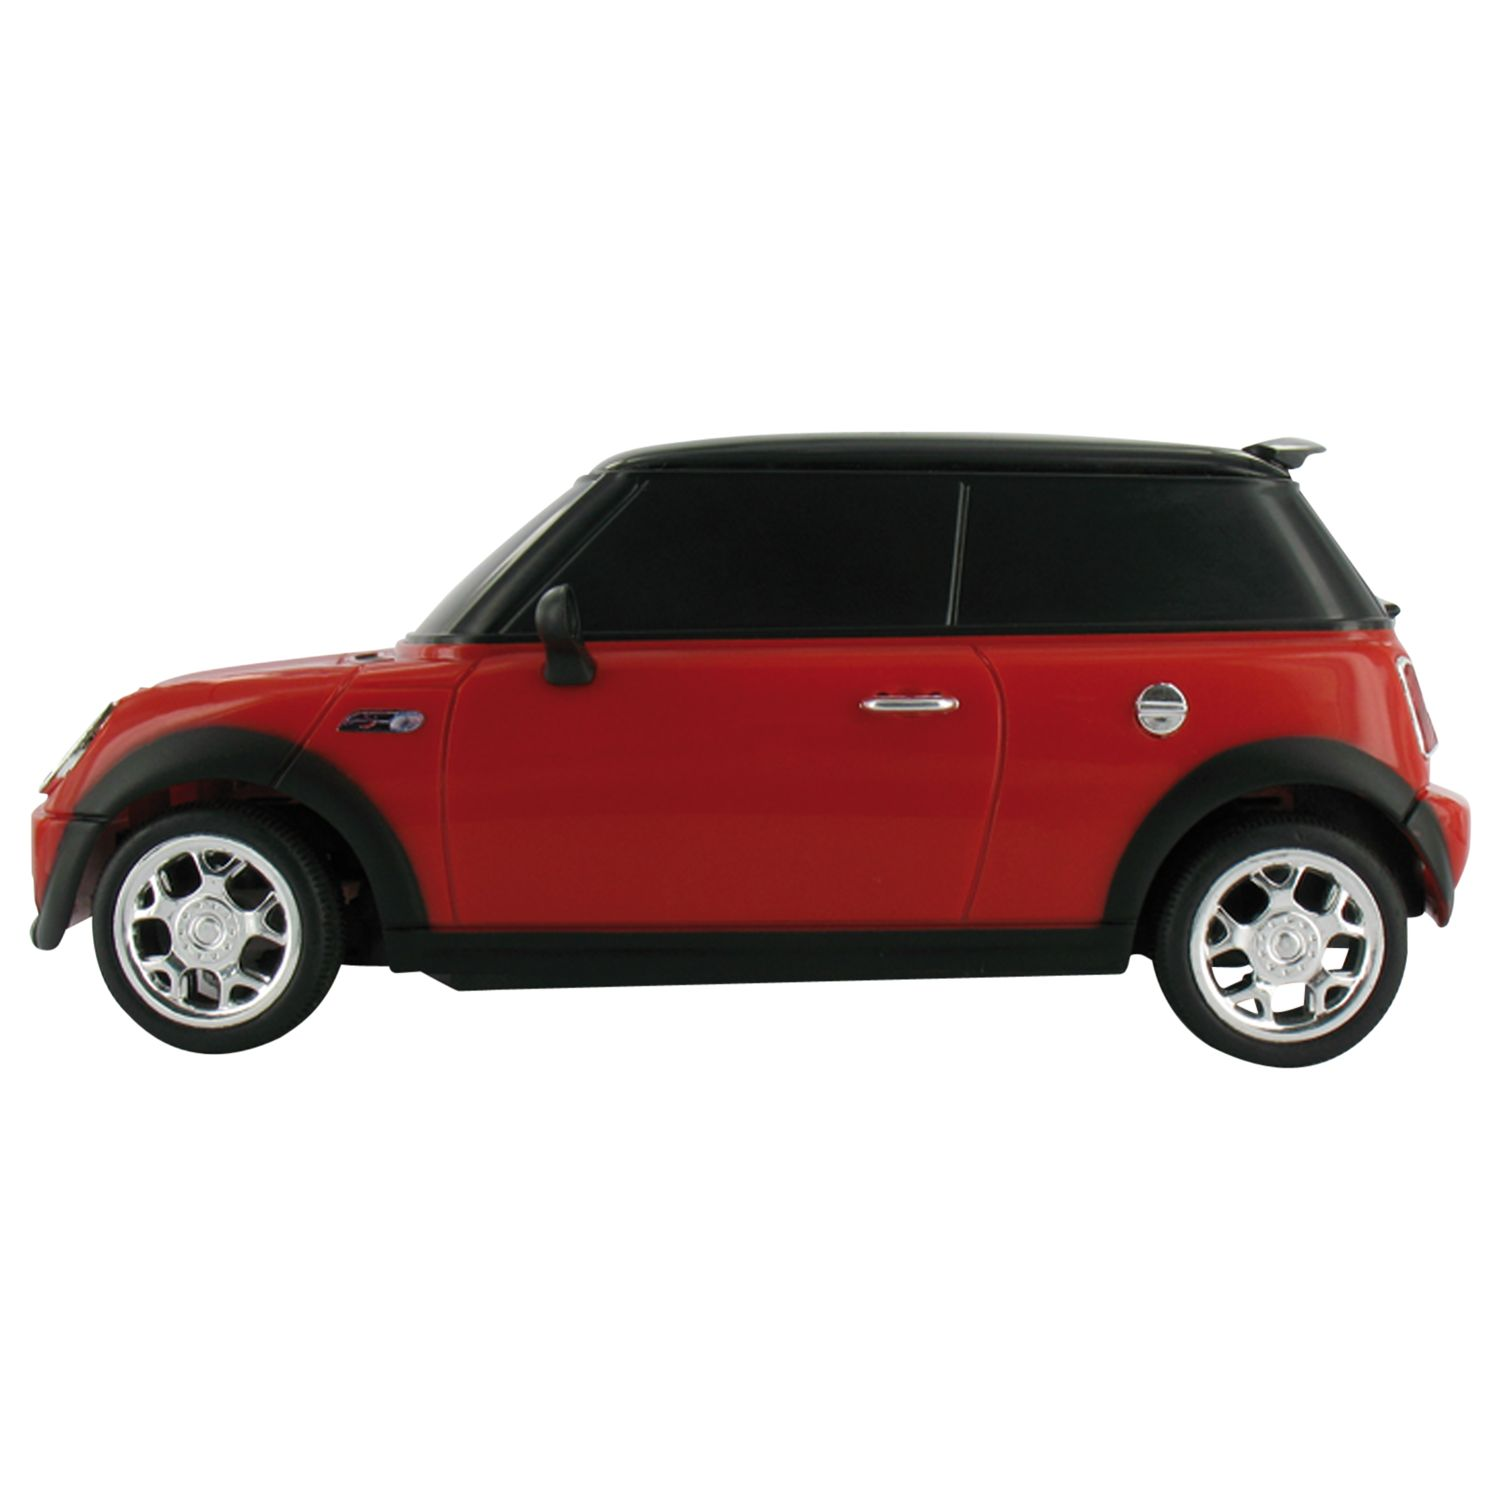 BeeWi Bluetooth Controlled Mini Cooper for iPad/iPhone/iPod Touch